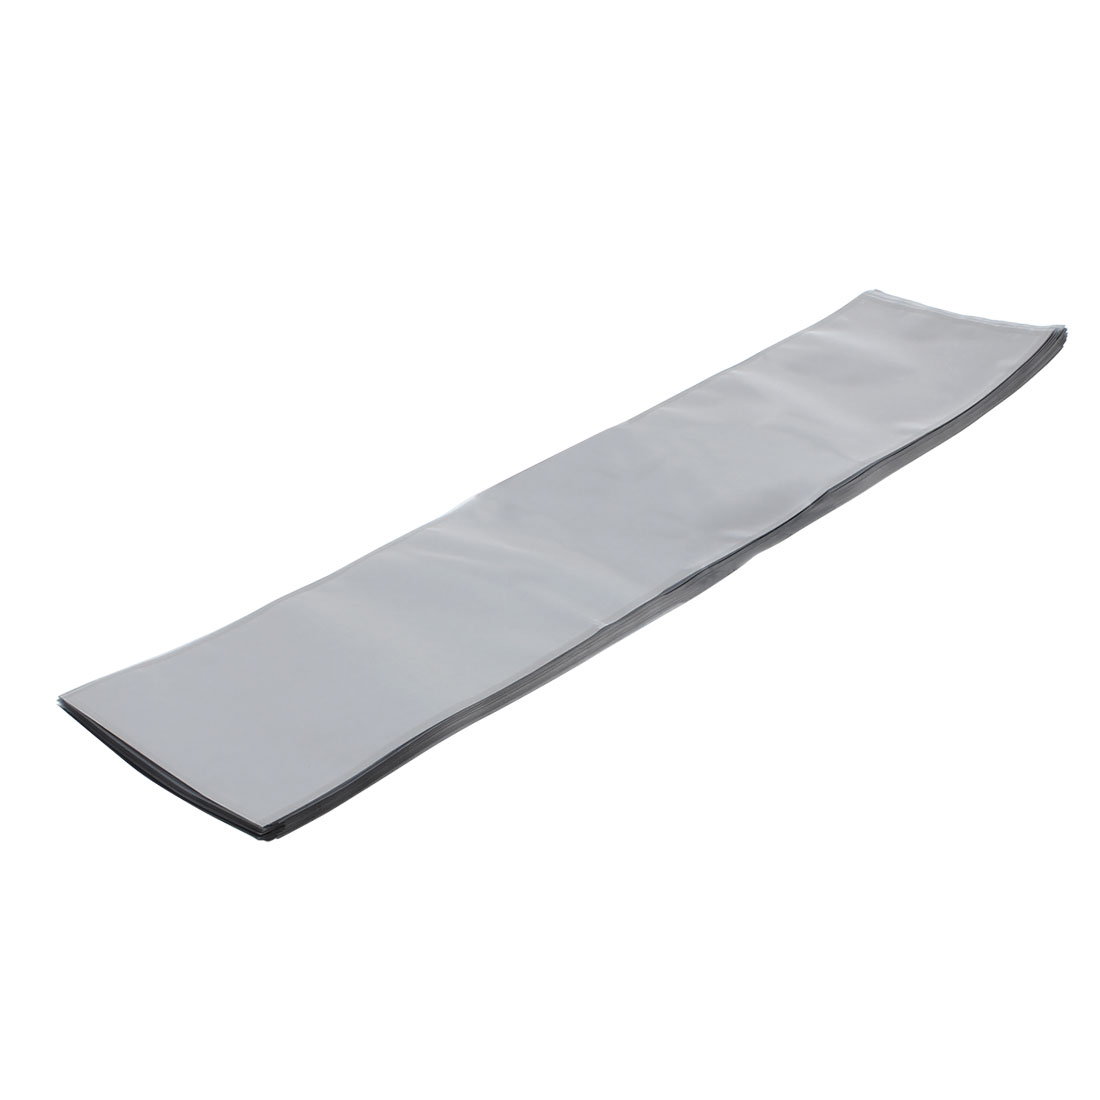 50 Pcs 150mm x 660mm Silver Tone Flat Open Top Anti Static Bag For Electronics